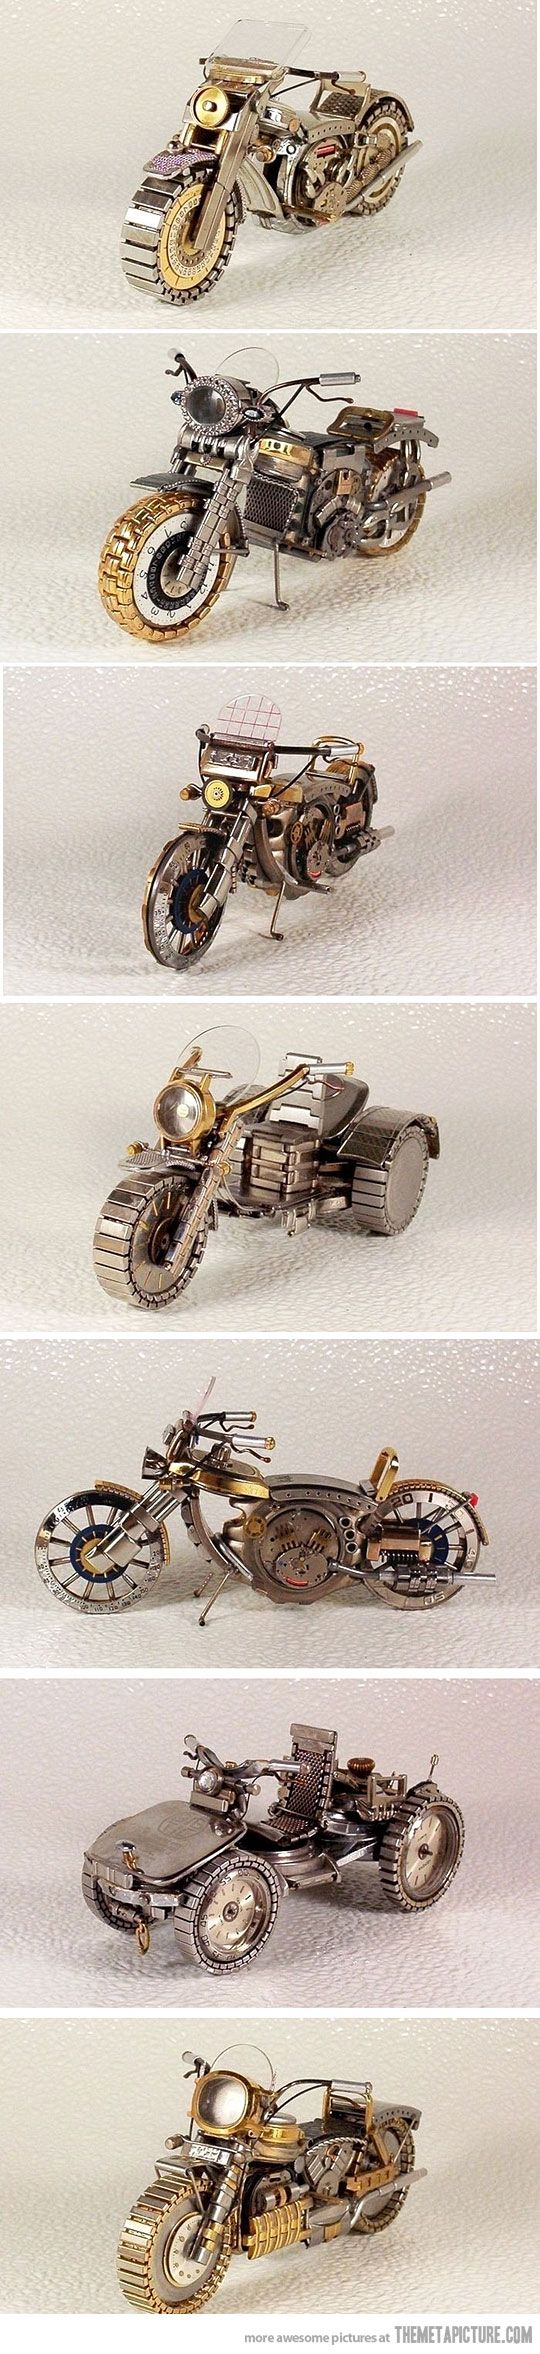 Cool bikes mаdе out of old watches. This reminds me of the movie Hugo.